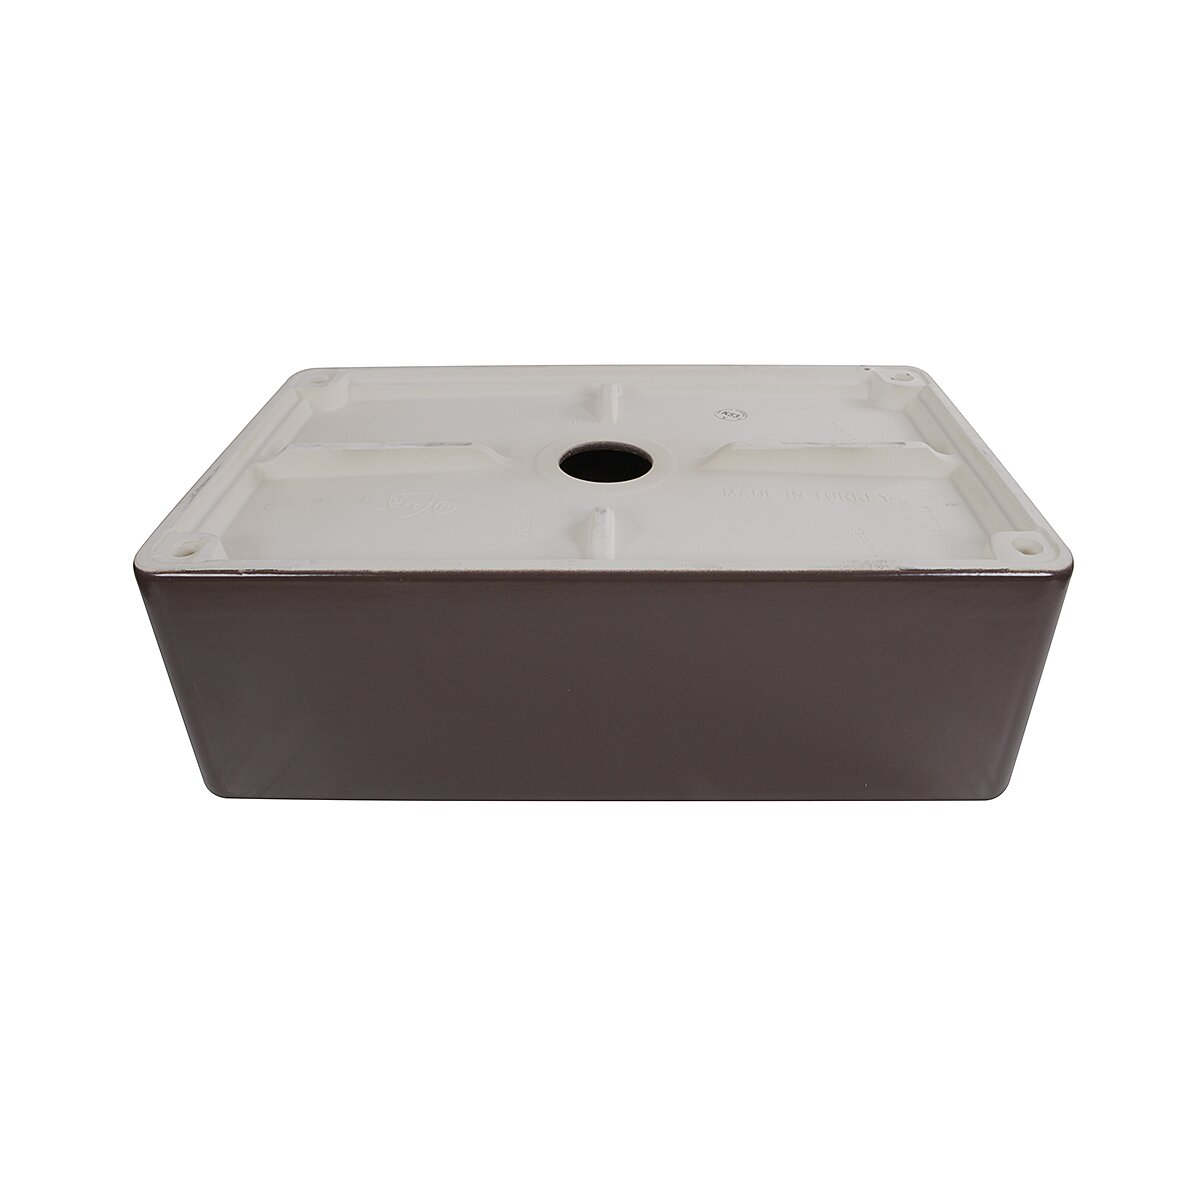 nantucket sinks cape 30 25 quot x 18 quot kitchen sink wayfair ca